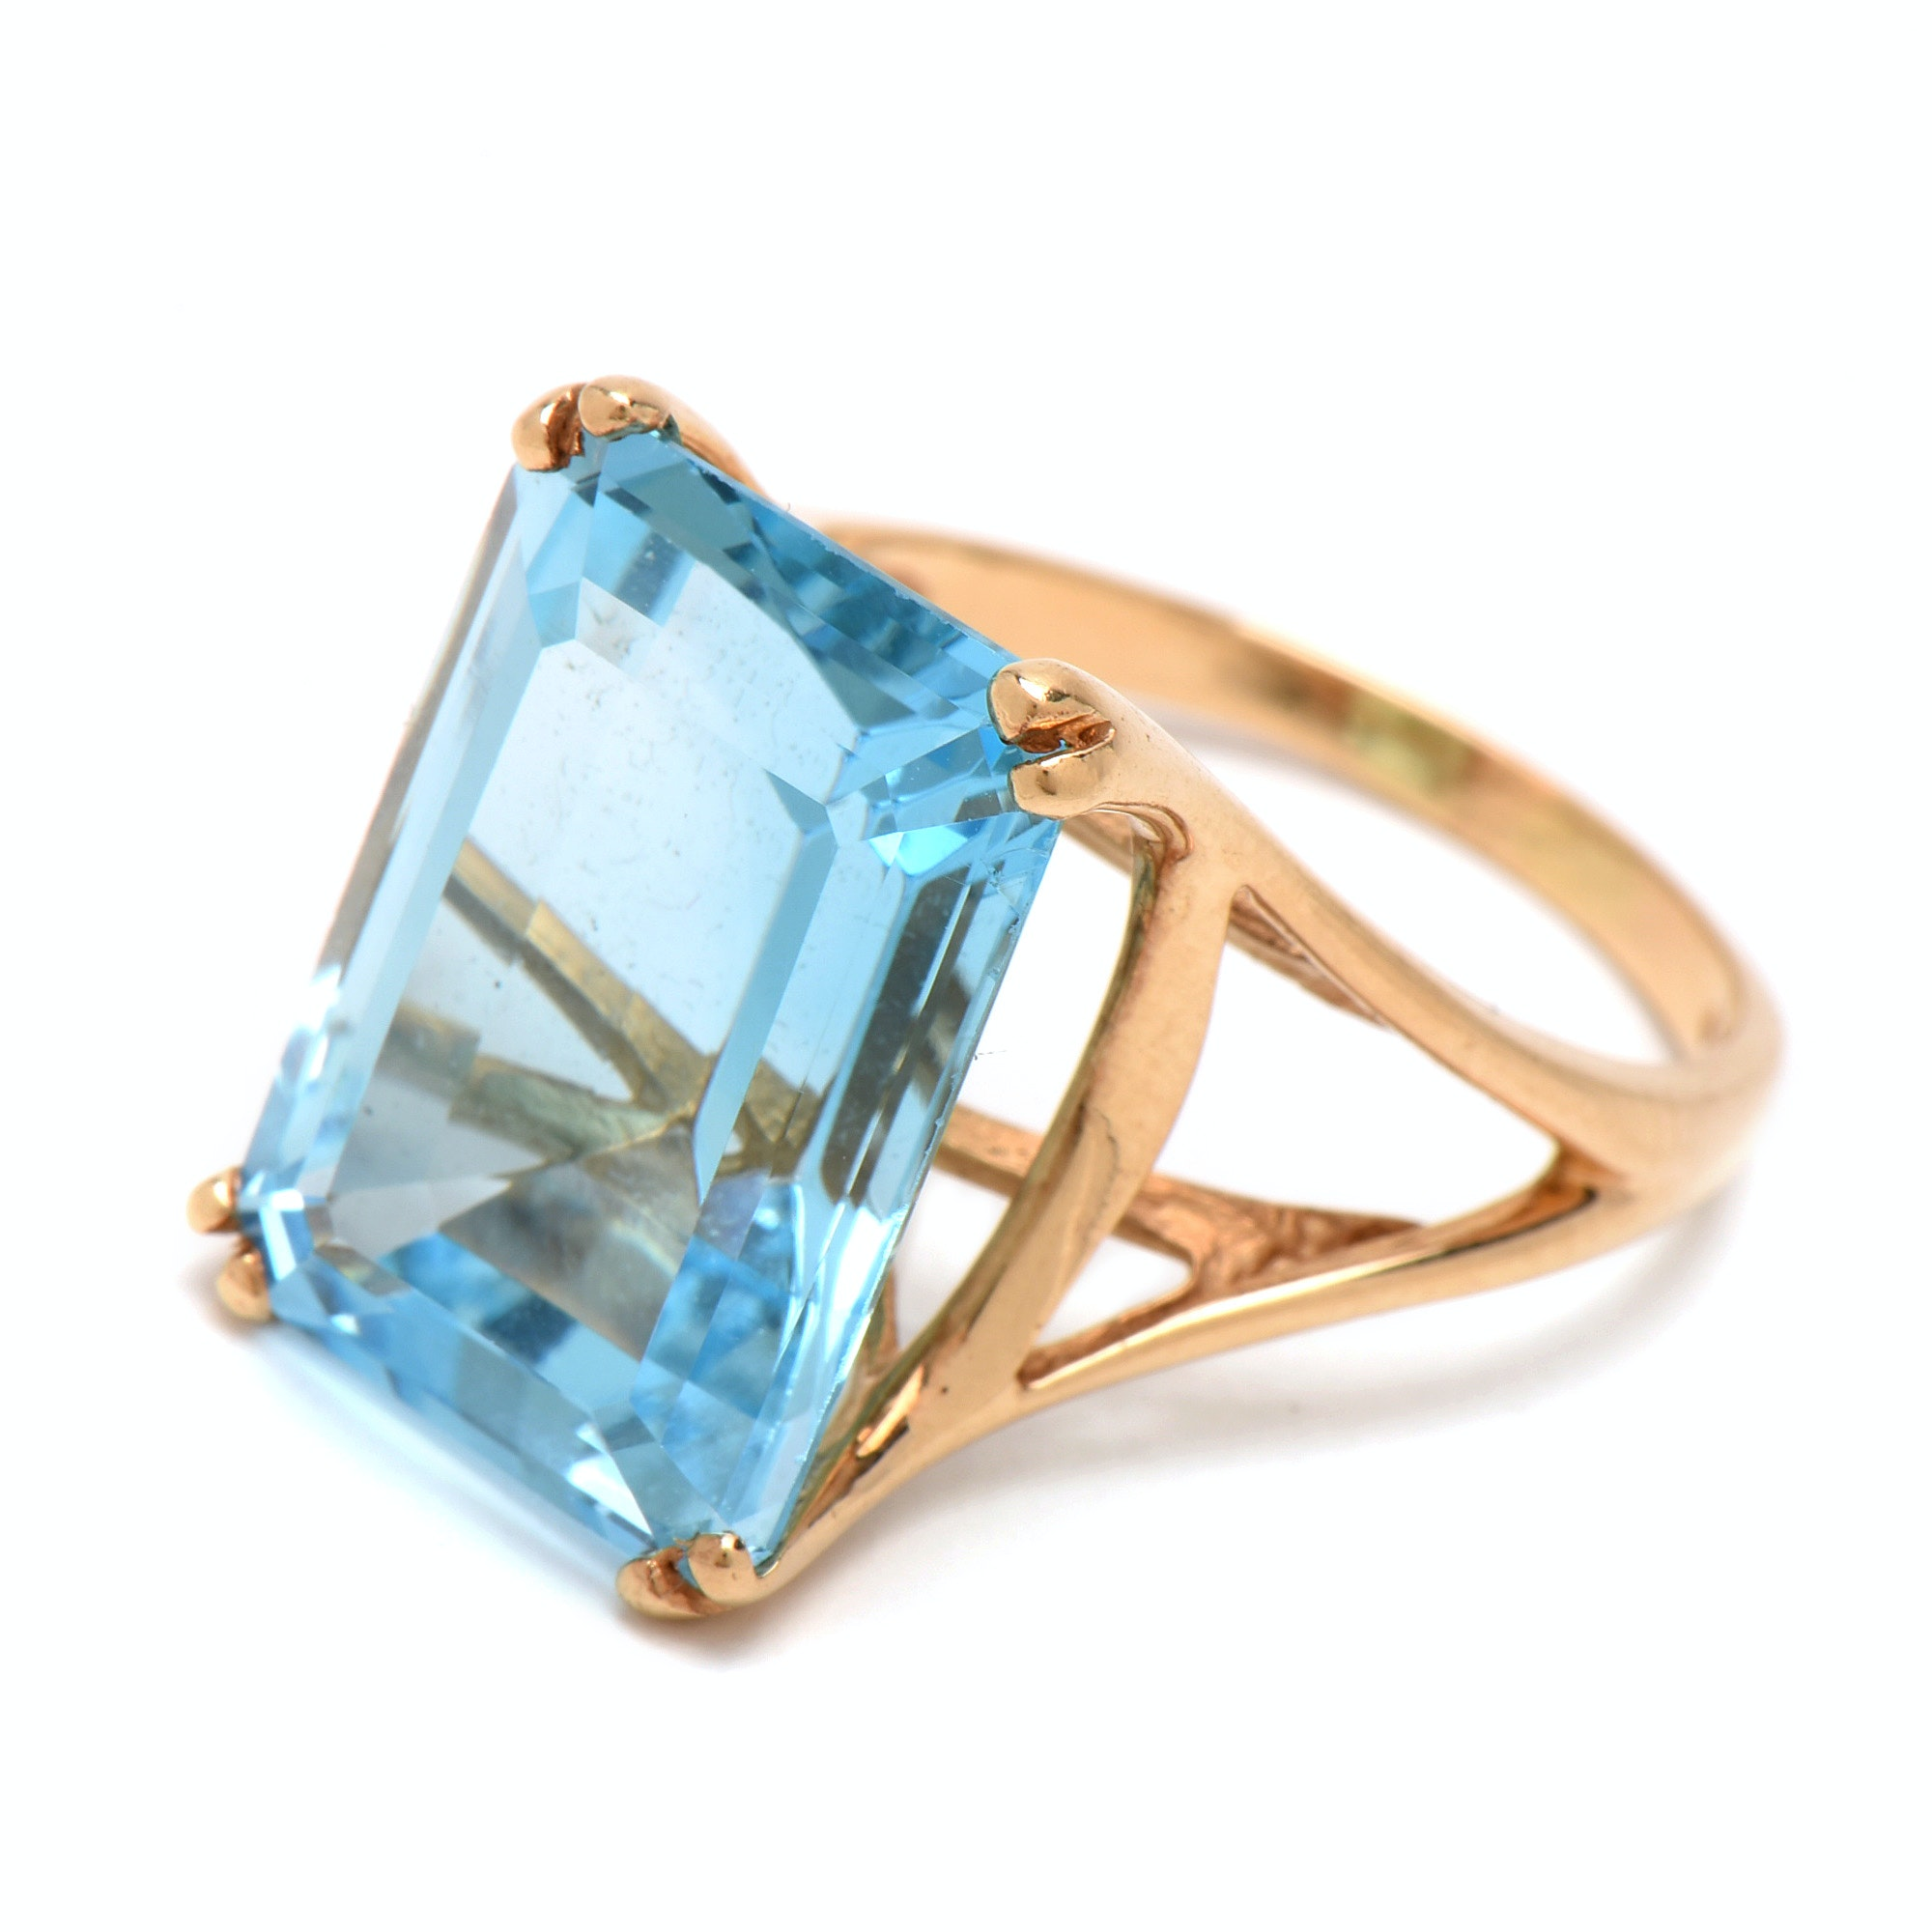 14K Yellow Gold 19.76 Carat Blue Topaz Statement Ring